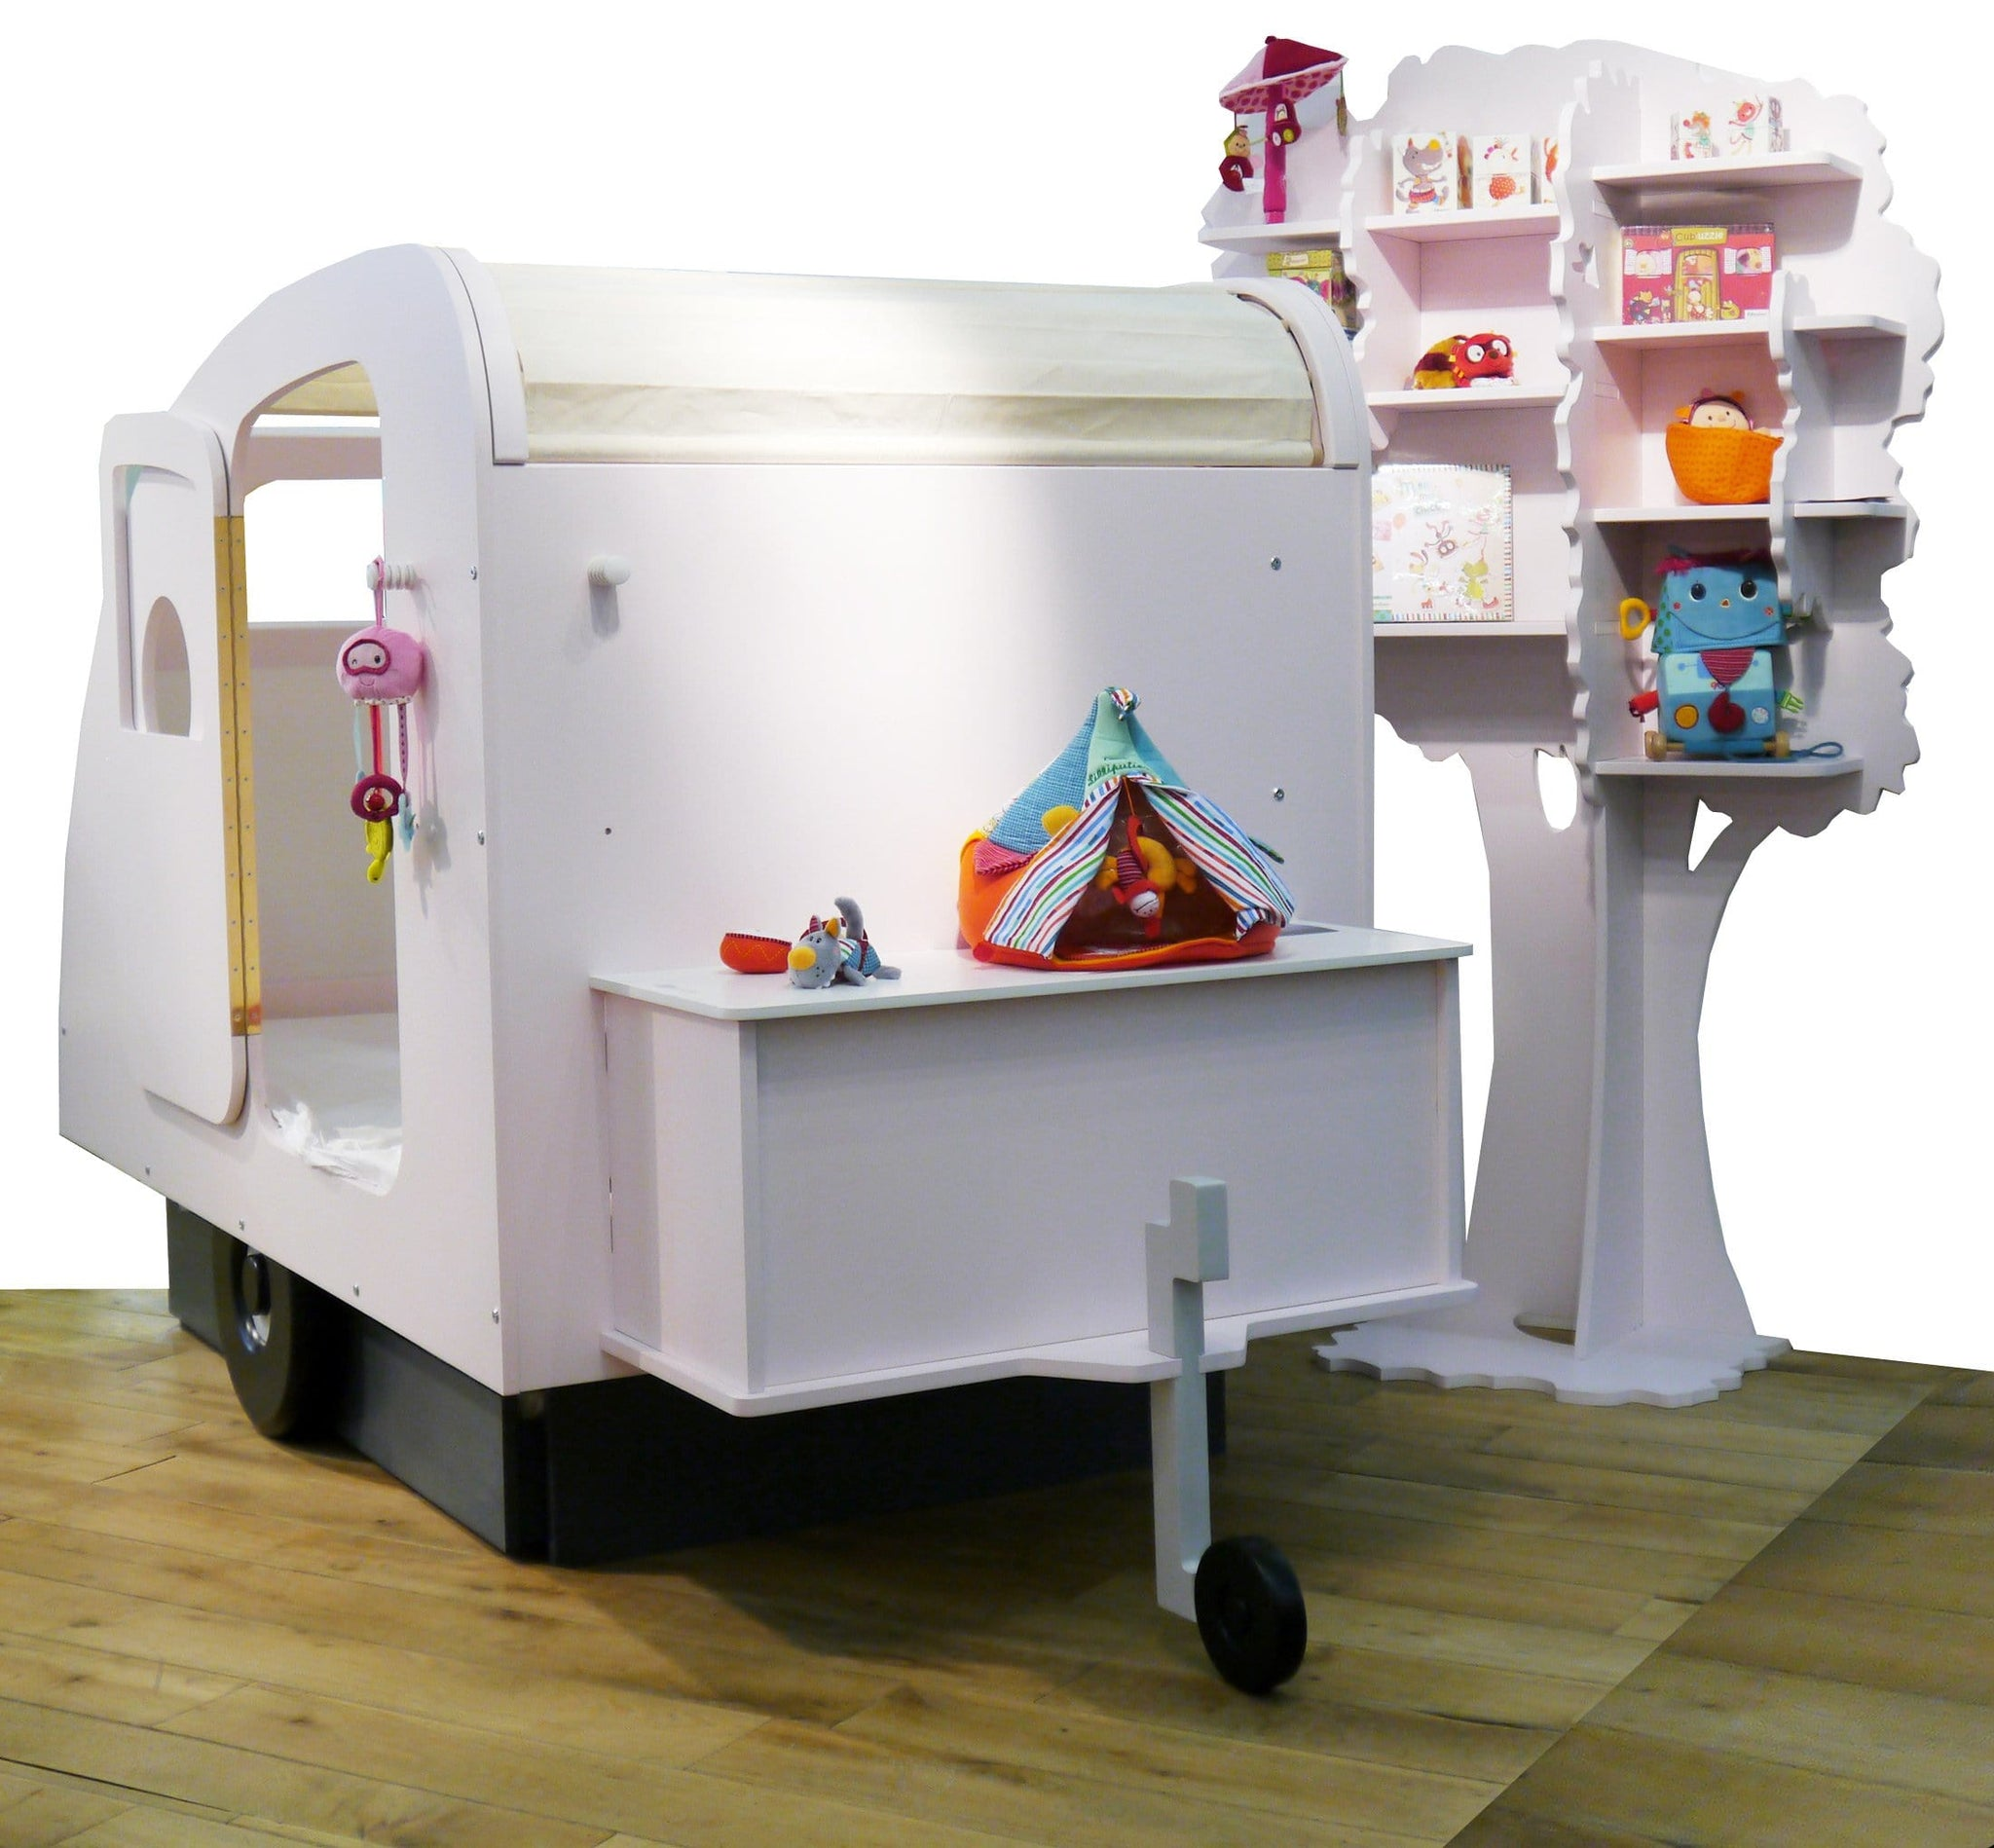 Mathy By Bols Children's Caravan Themed Bed